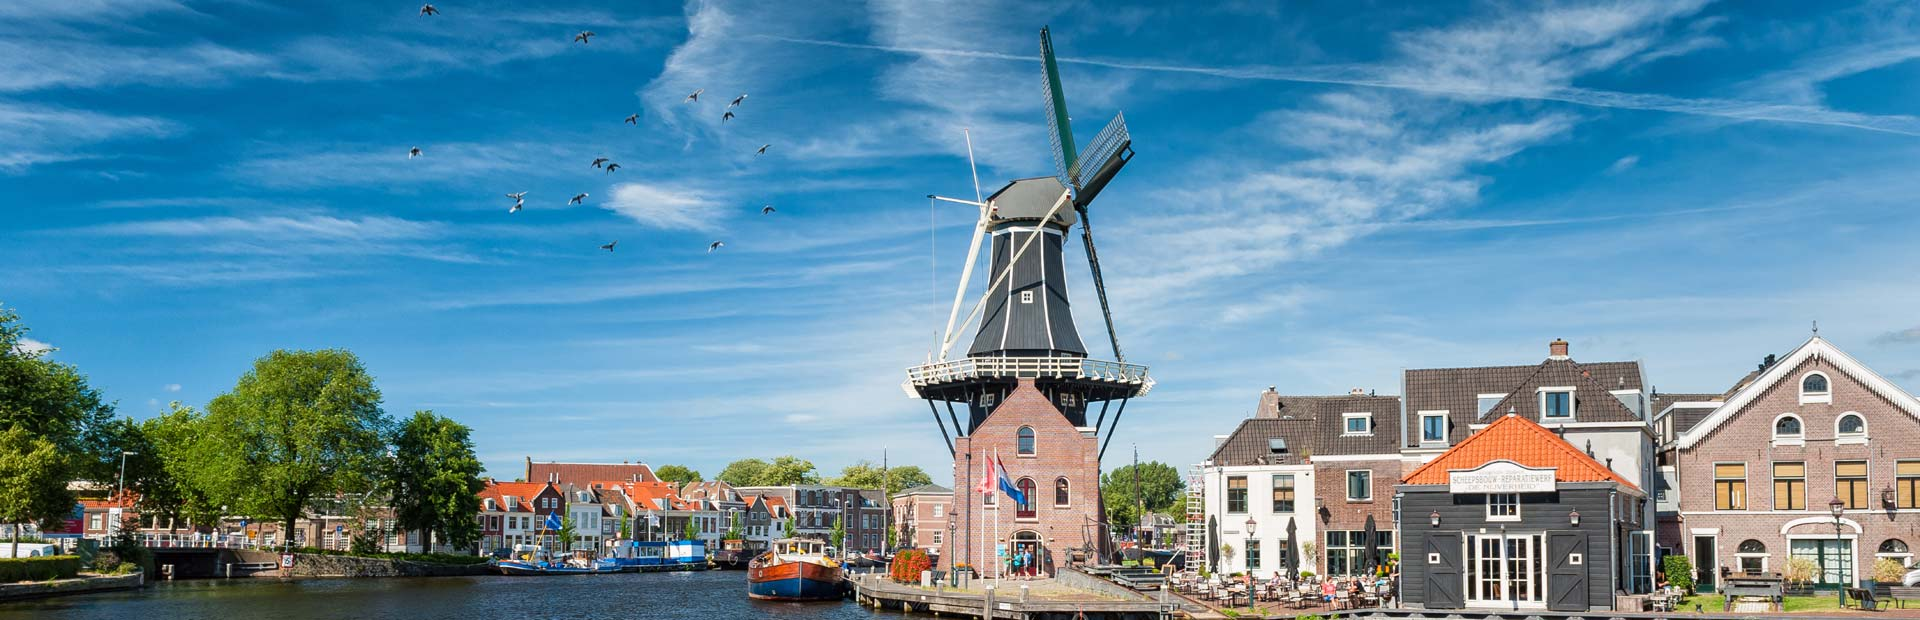 Dutch Waterways and windmill